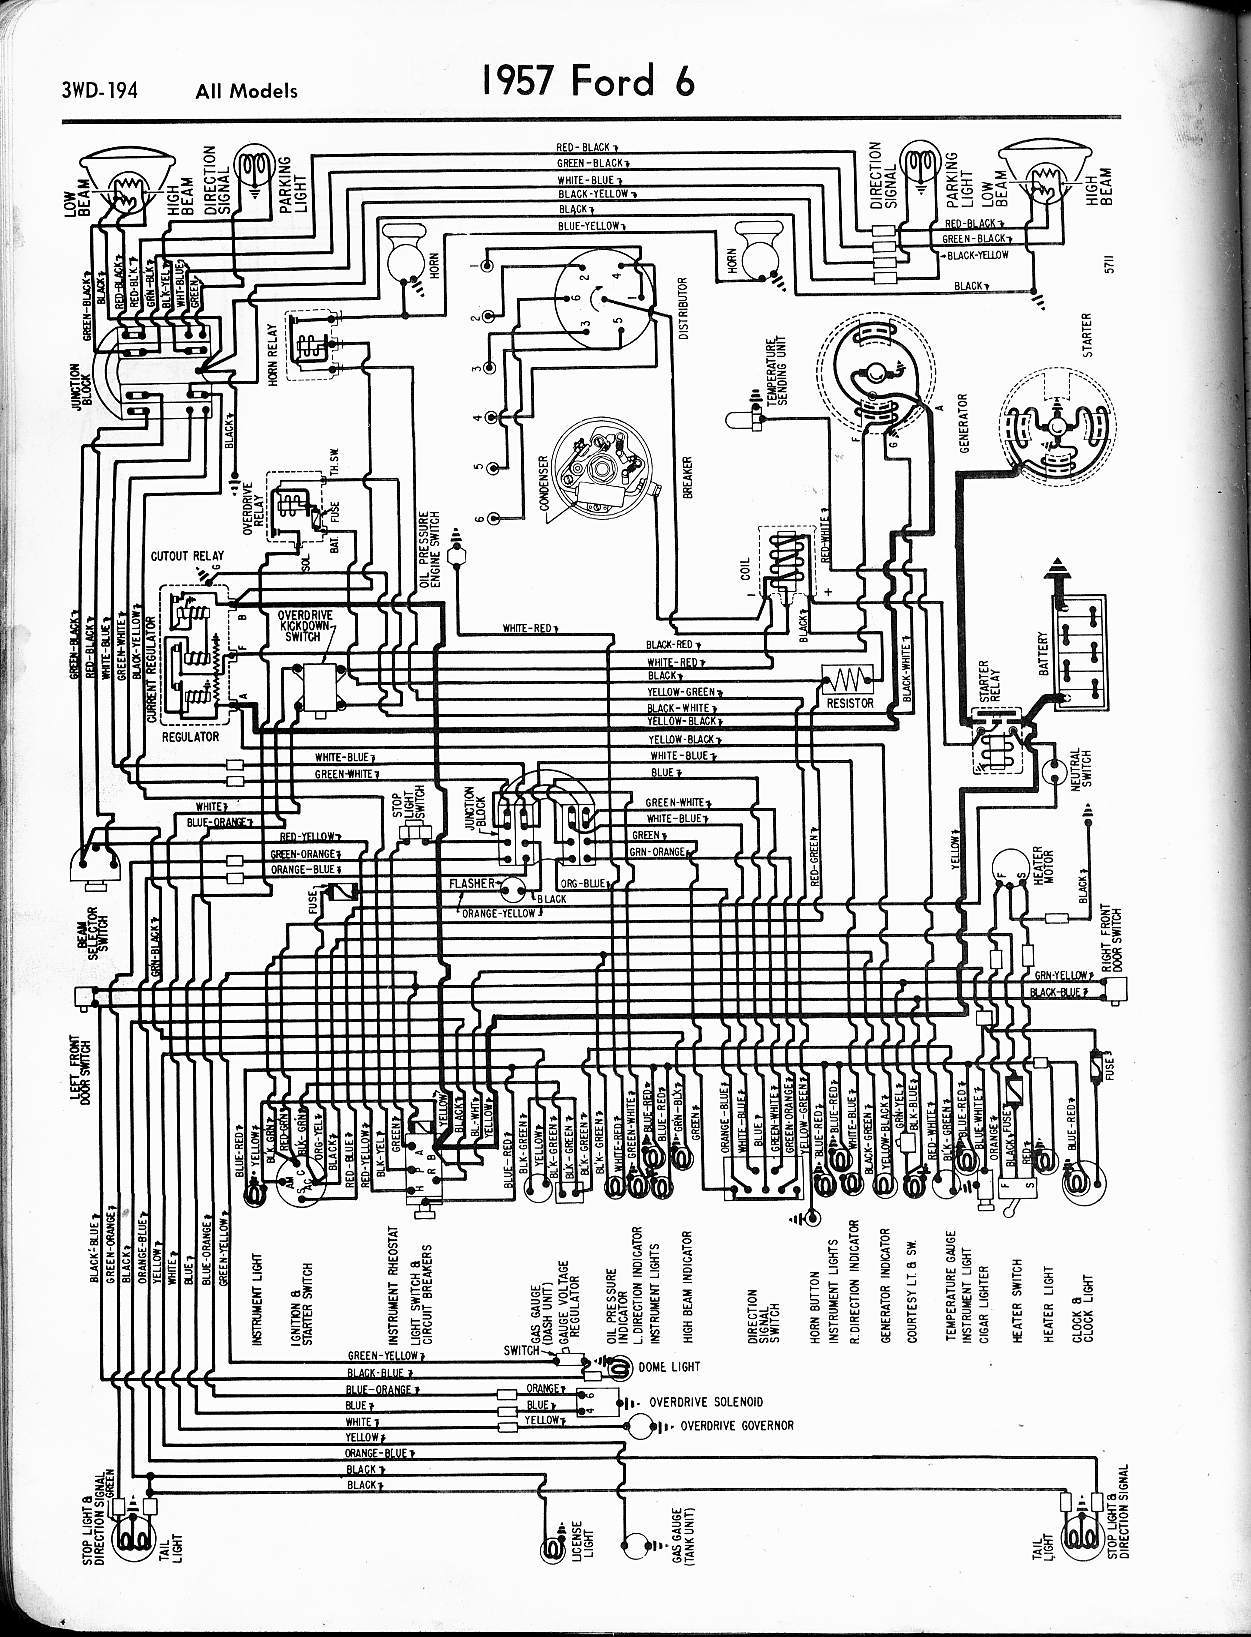 80 2010_07_23_013626_1957_ford_wiring_451fe1d3aafe571893763e4bcbb92521b2870e9d wiring diagram for 1972 ford f100 the wiring diagram 1946 ford truck wiring diagram at gsmx.co